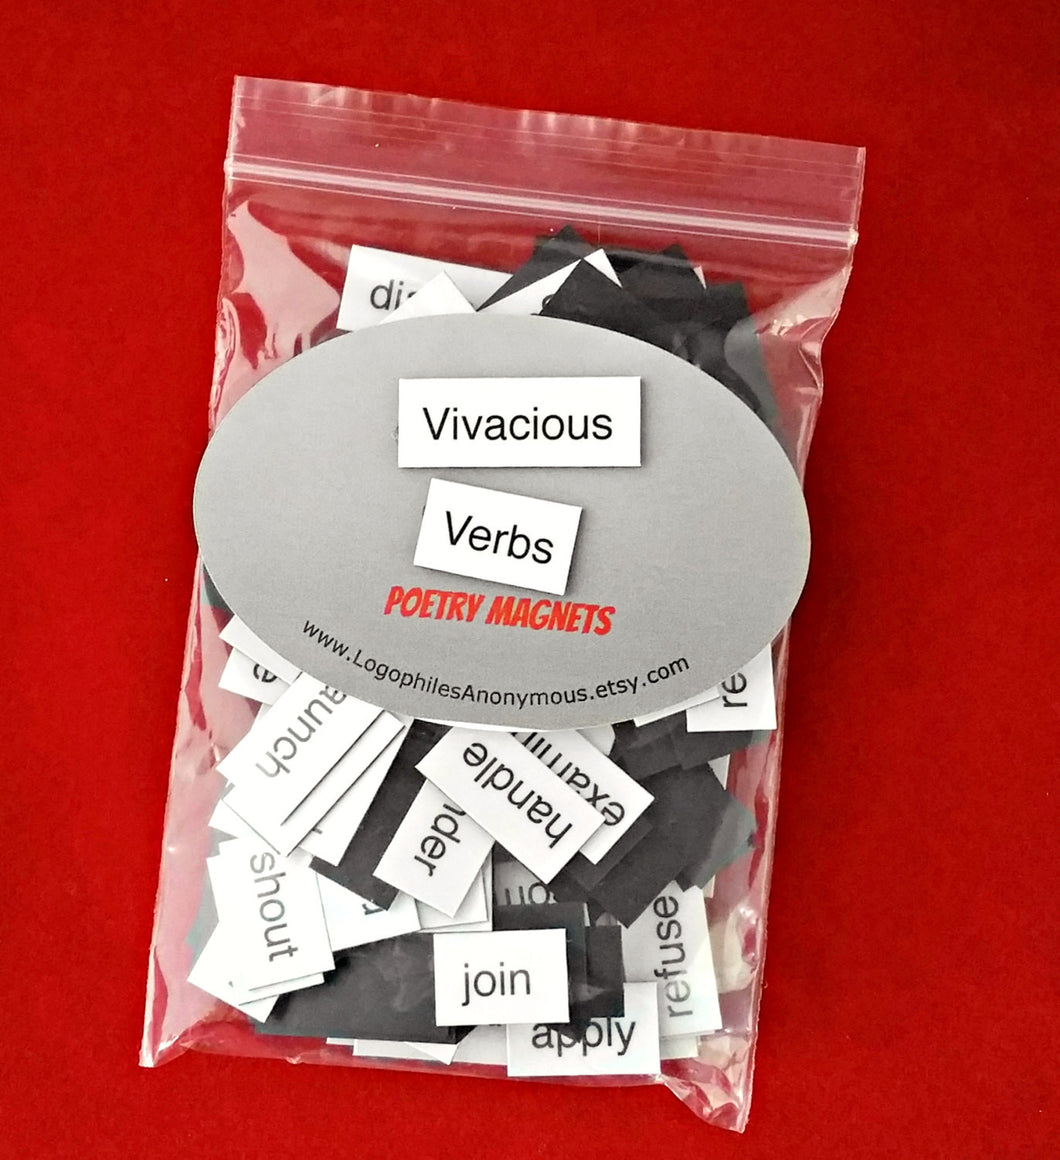 Vivacious Verbs Poetry Magnets